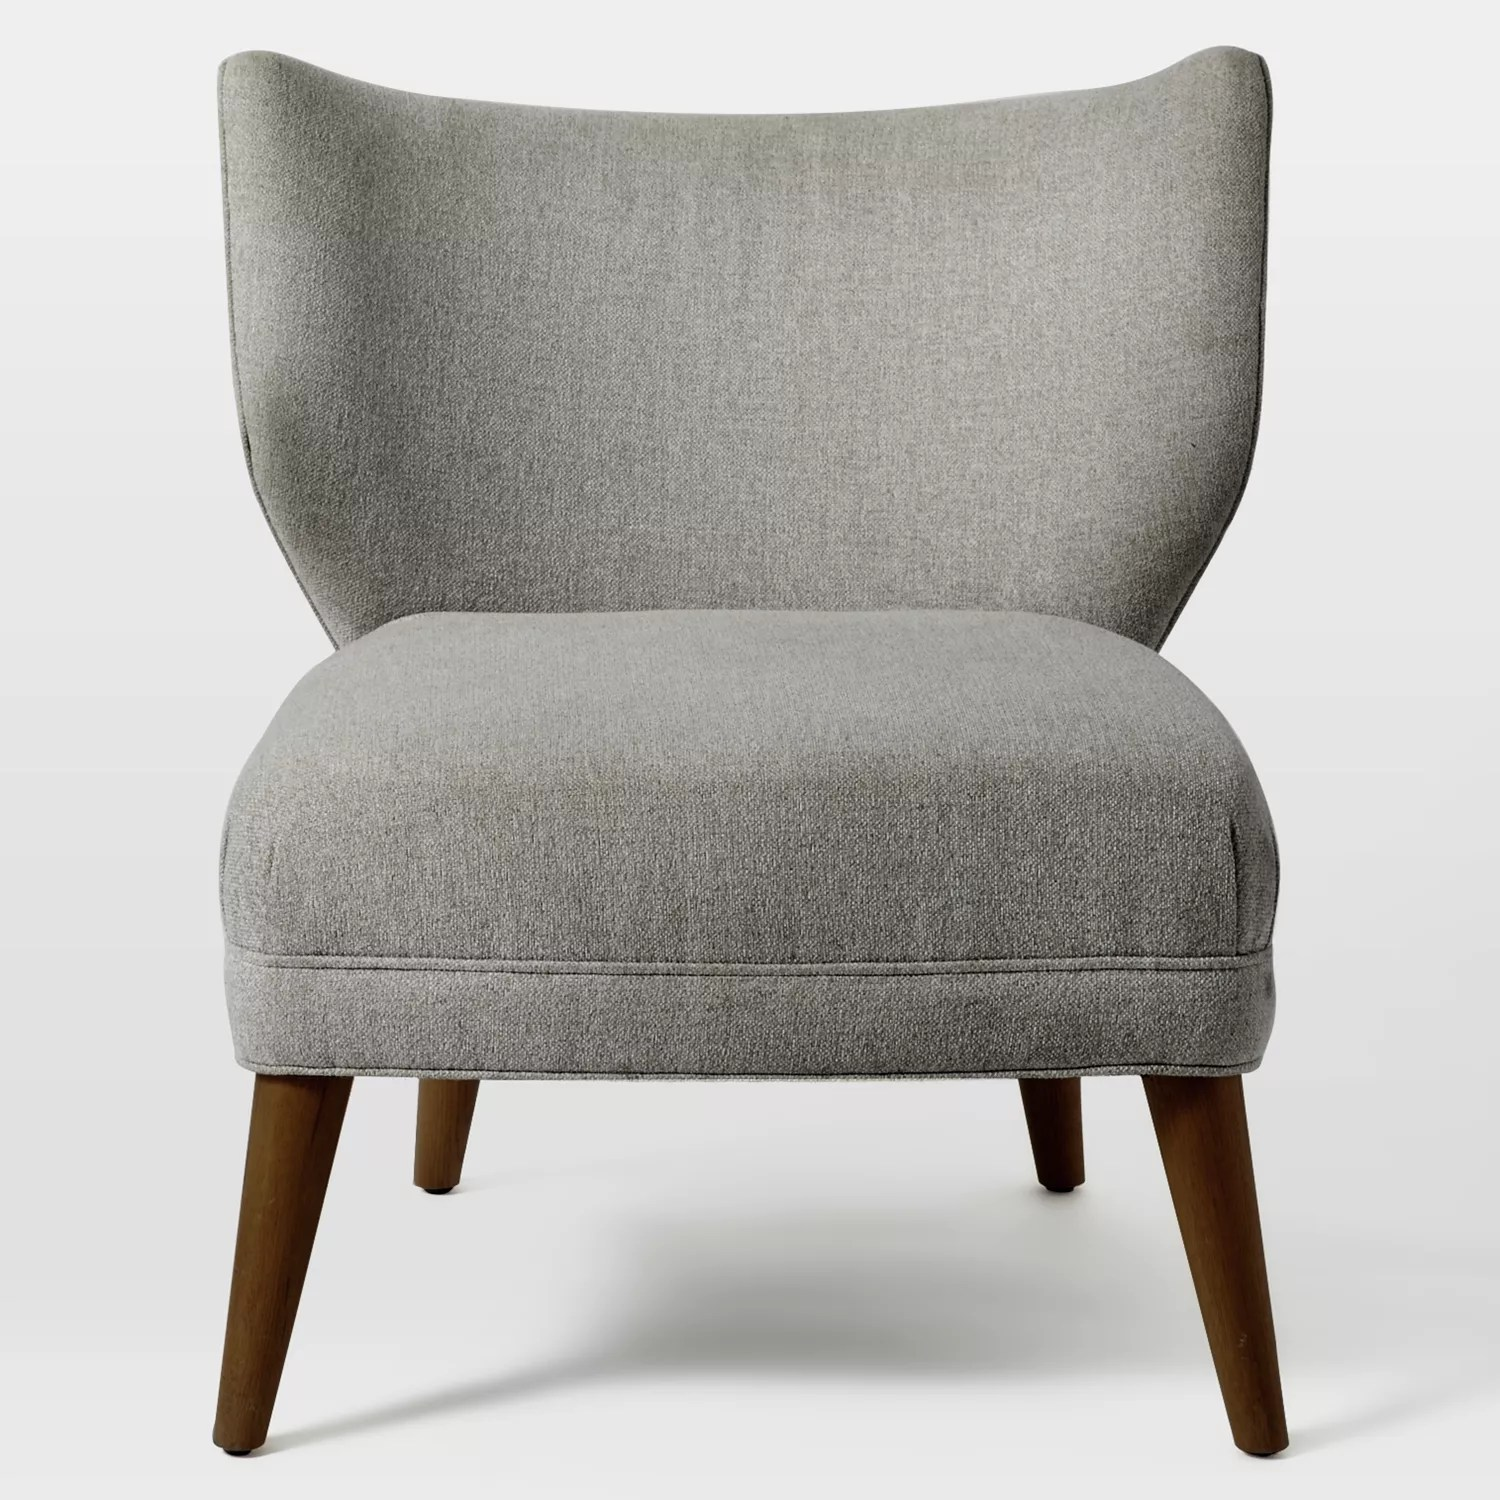 Retro Wing Chair West Elm Retro Wing Chair Retro Weave Grey At John Lewis